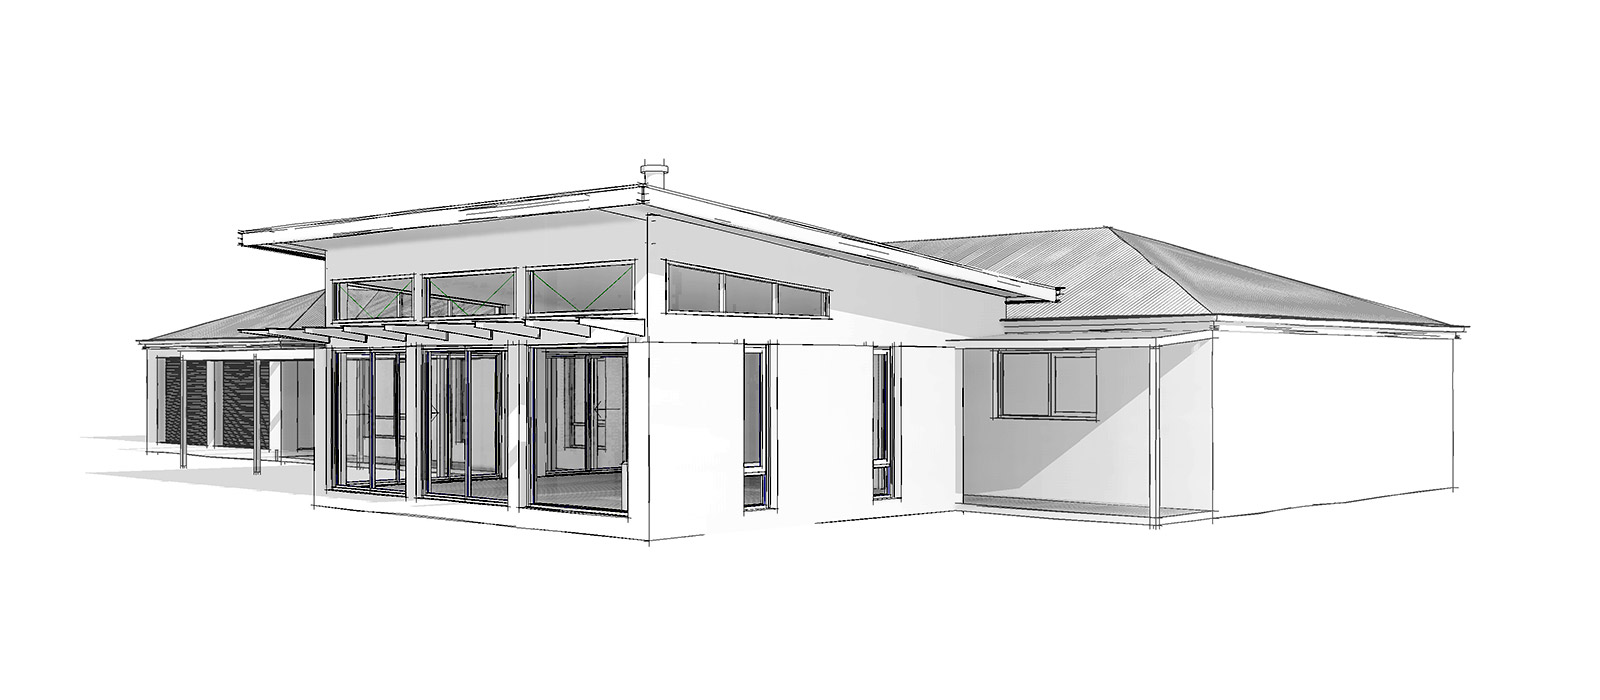 solar passive design for a living room extension Bendigo